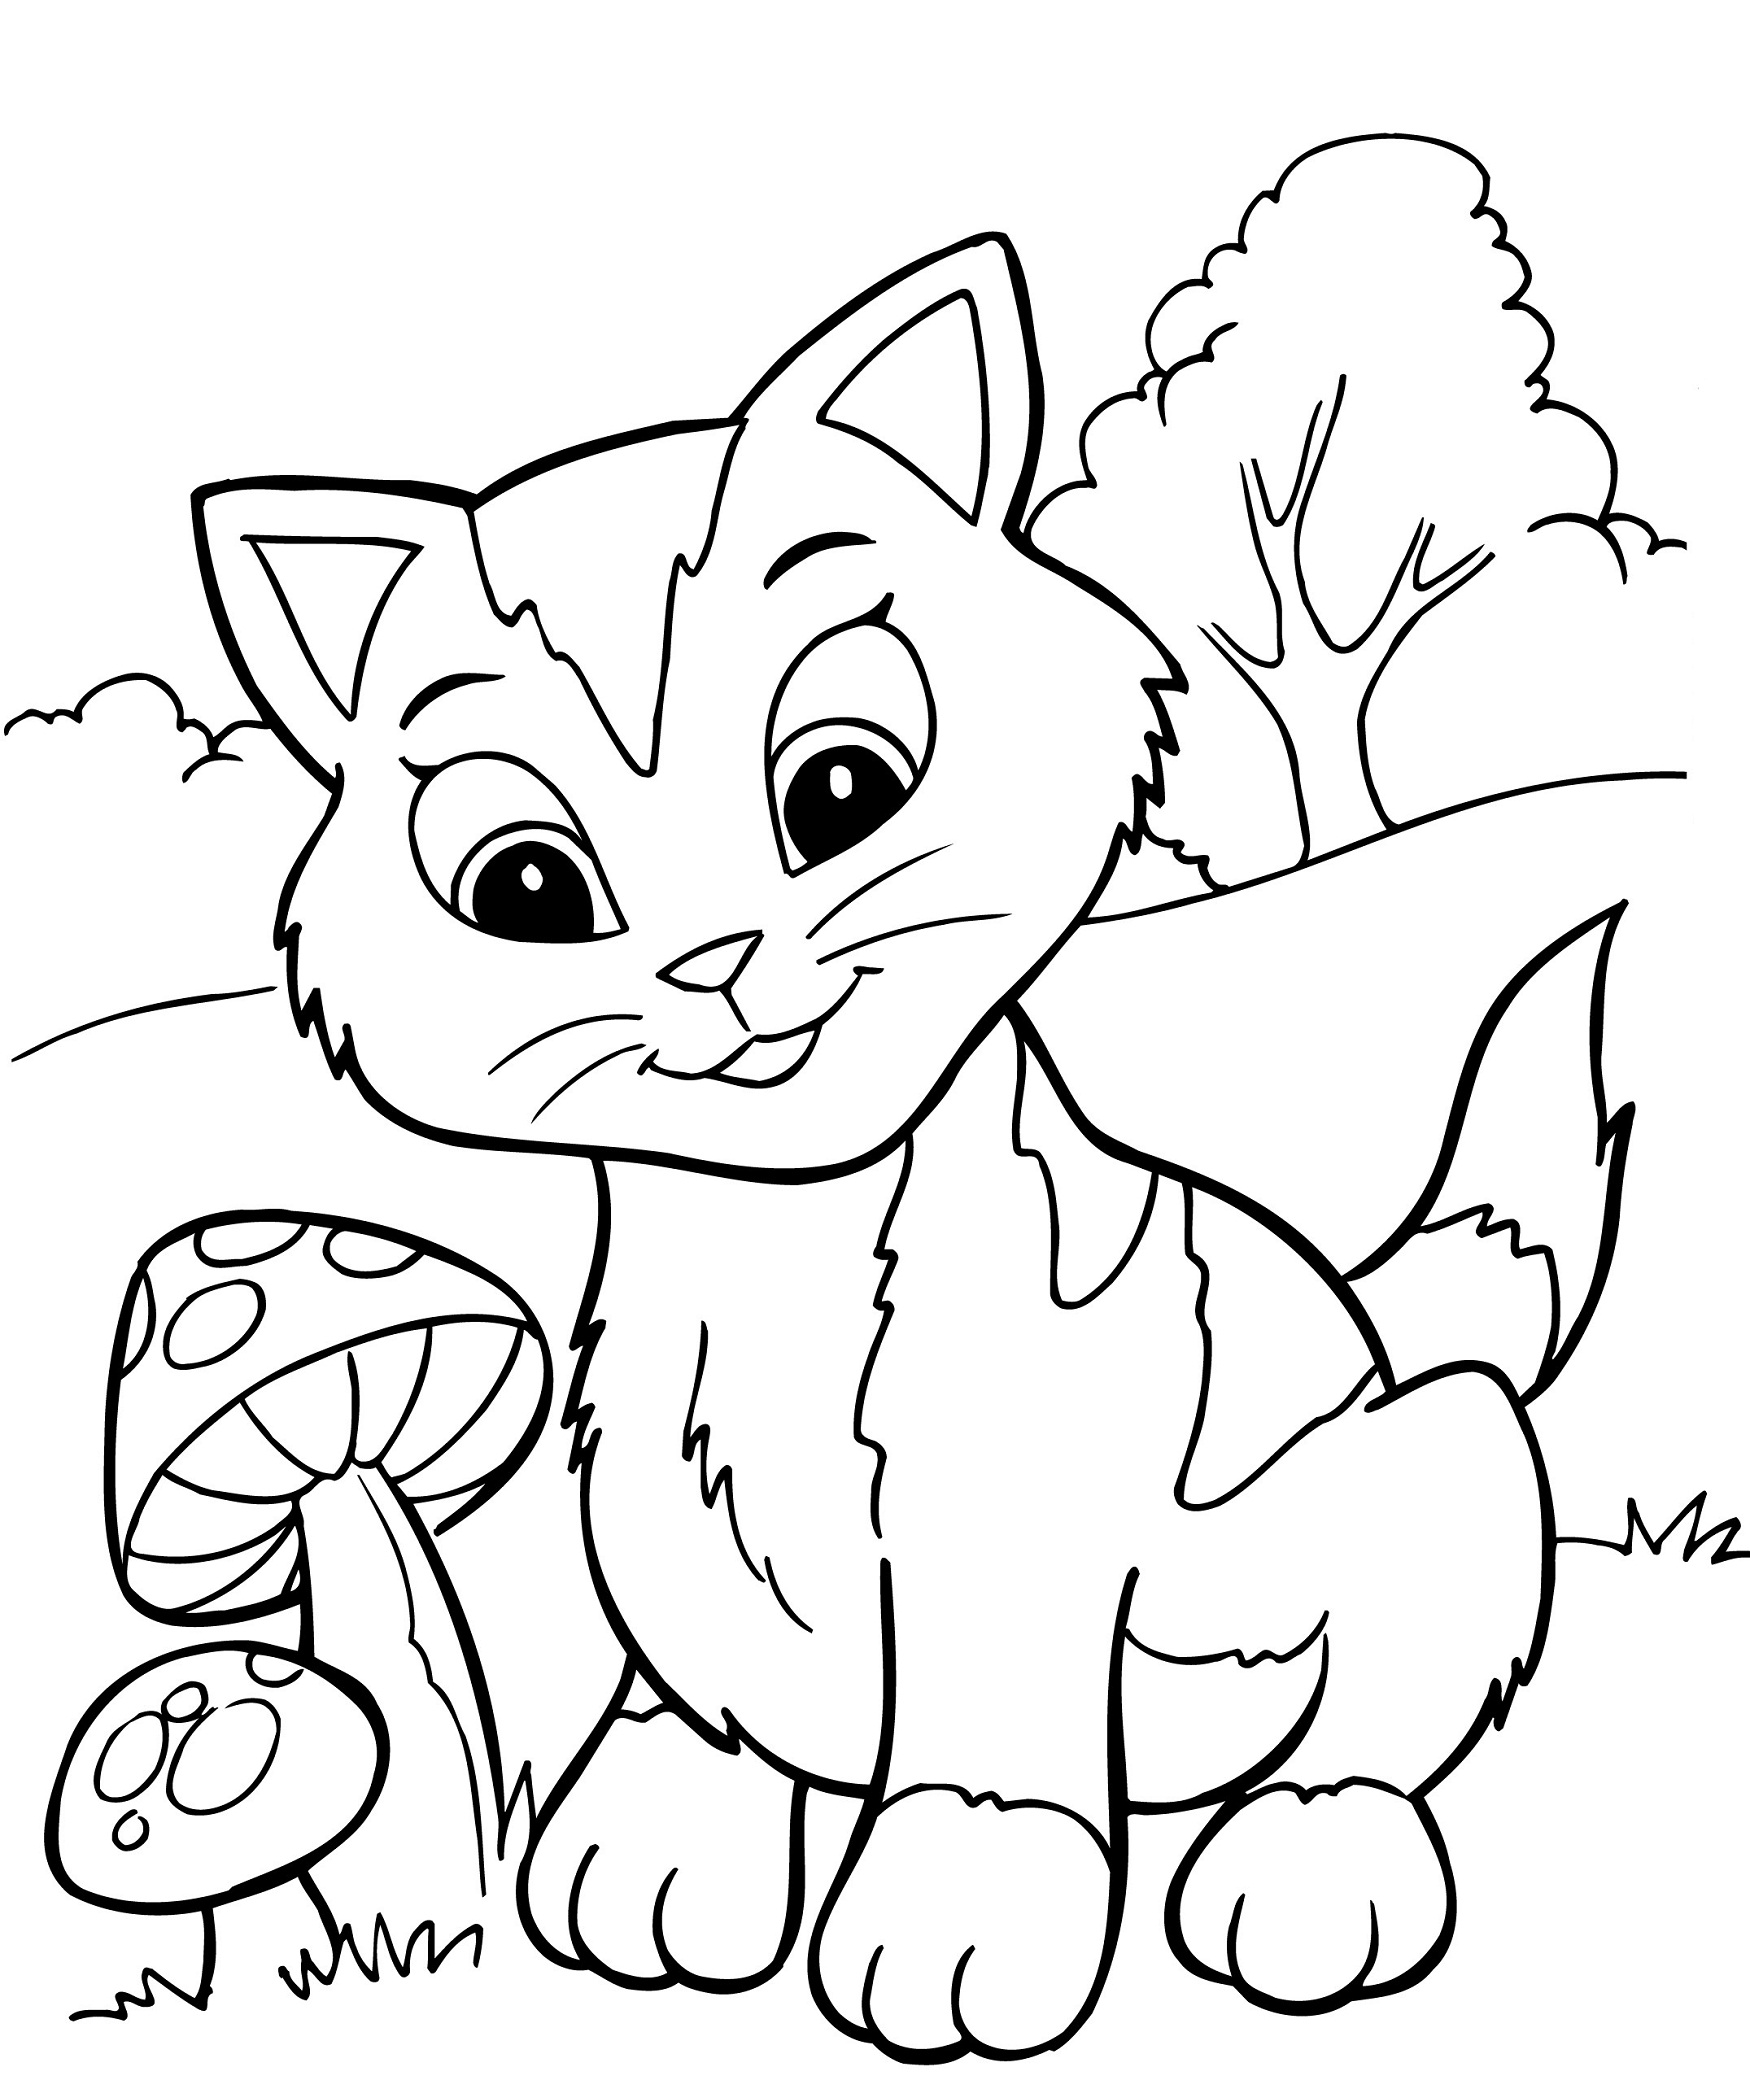 1750x2080 Free Printable Kitten Coloring Pages For Kids Best Coloring Pages